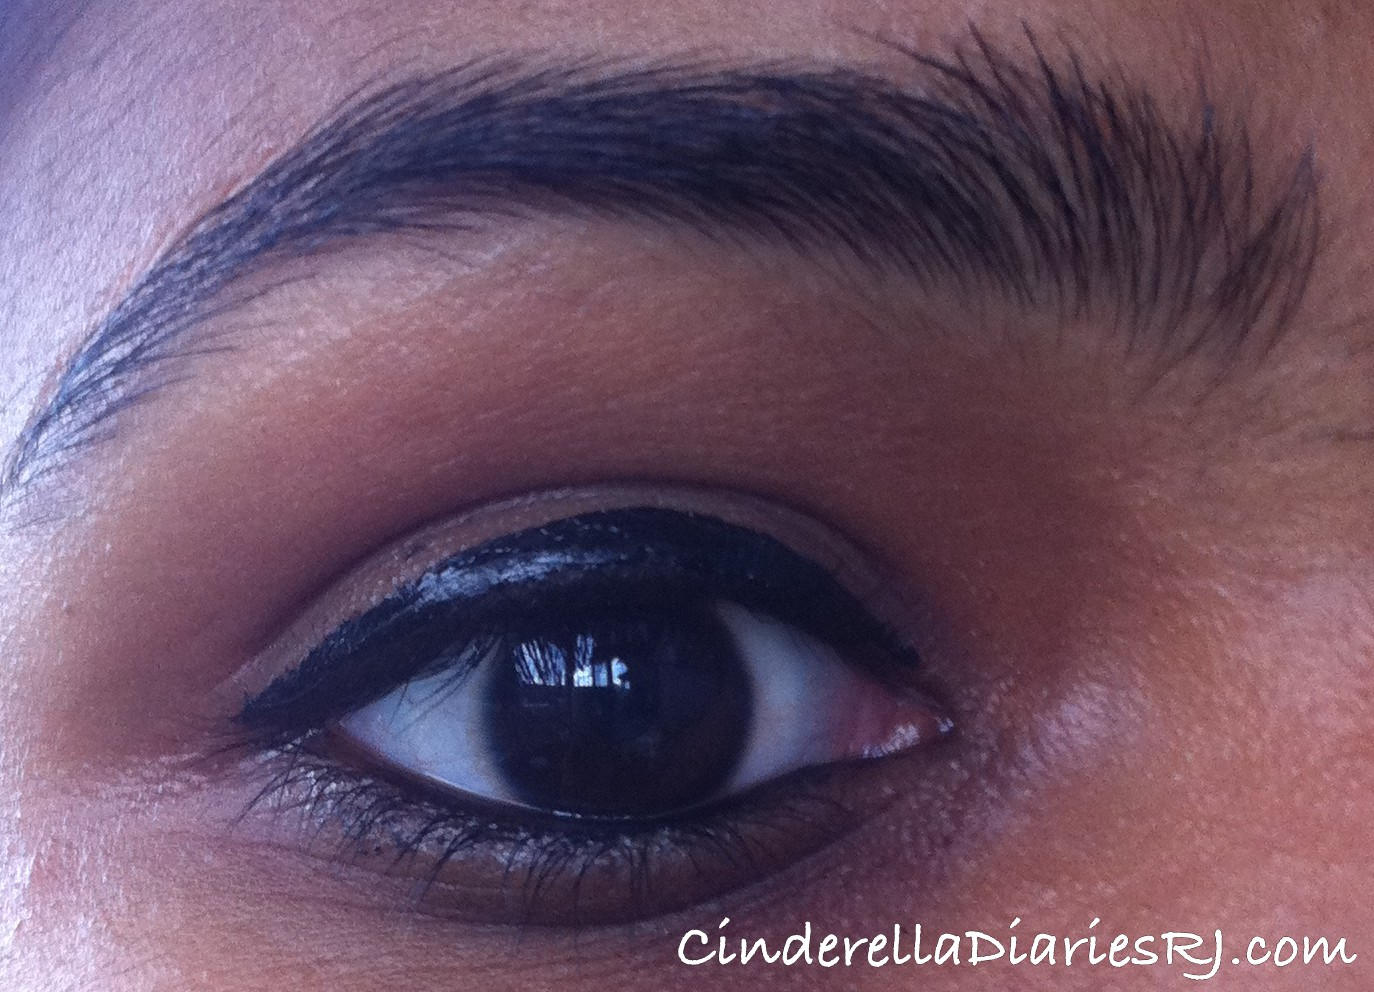 Maybelline Hyper Glossy Electrics Liquid Liner Review Black Lazer Ink Eye The Is Intensely And Really You Can See Glossyness Of As Light Hits Your Eyes Due To Effect